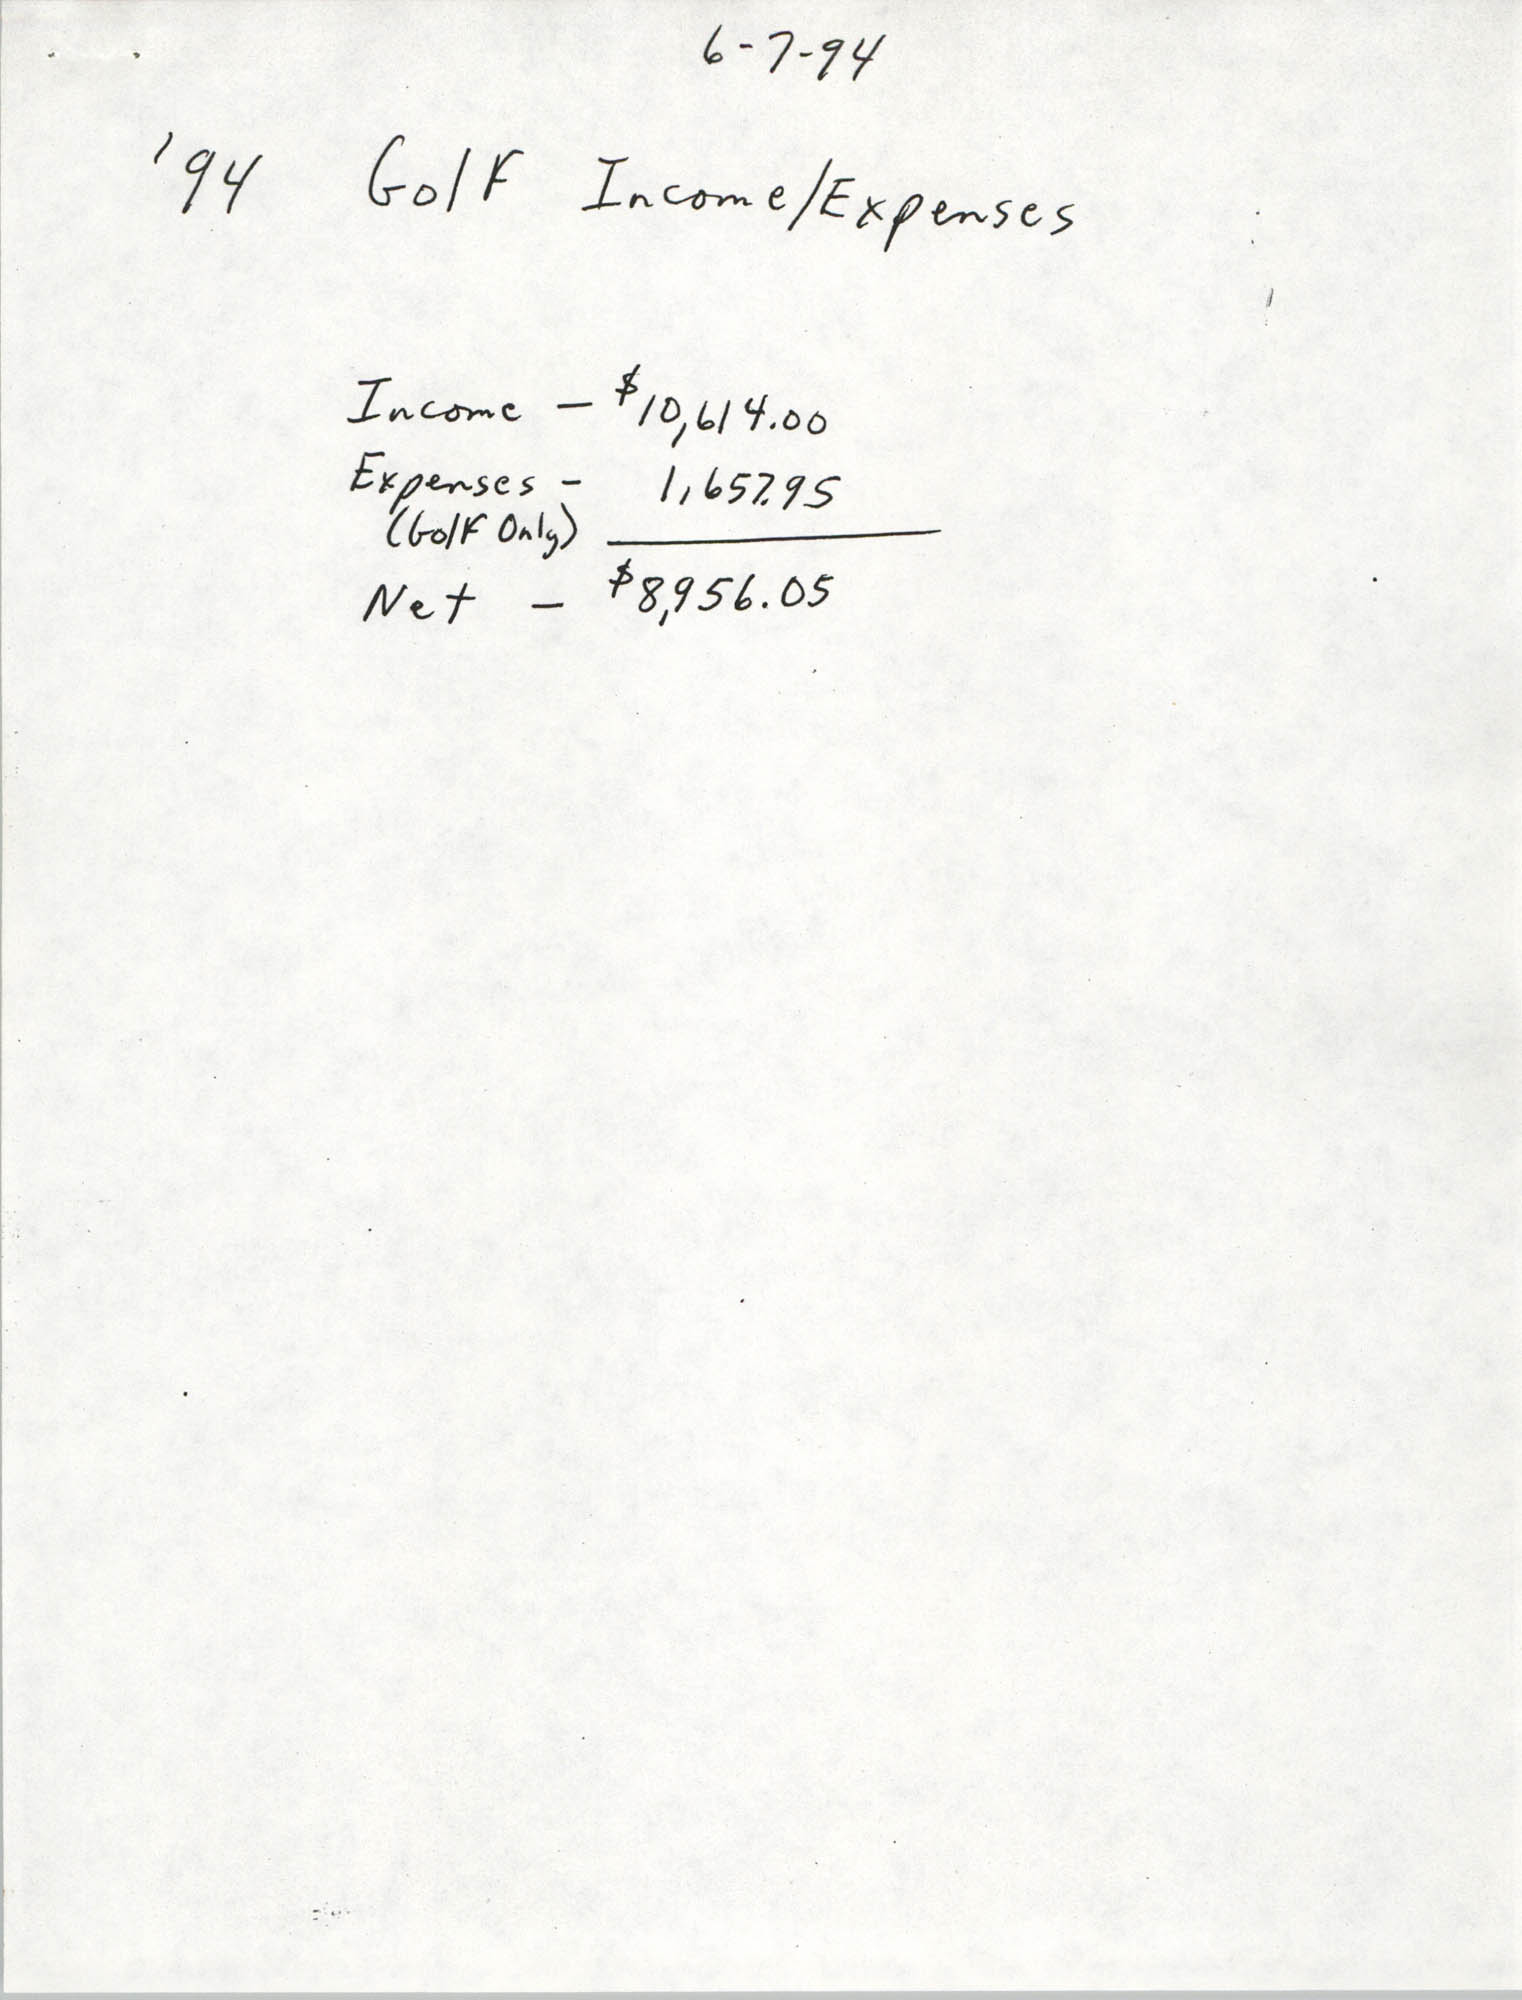 Handwritten Report, Golf Income/Expenses, June 7, 1994